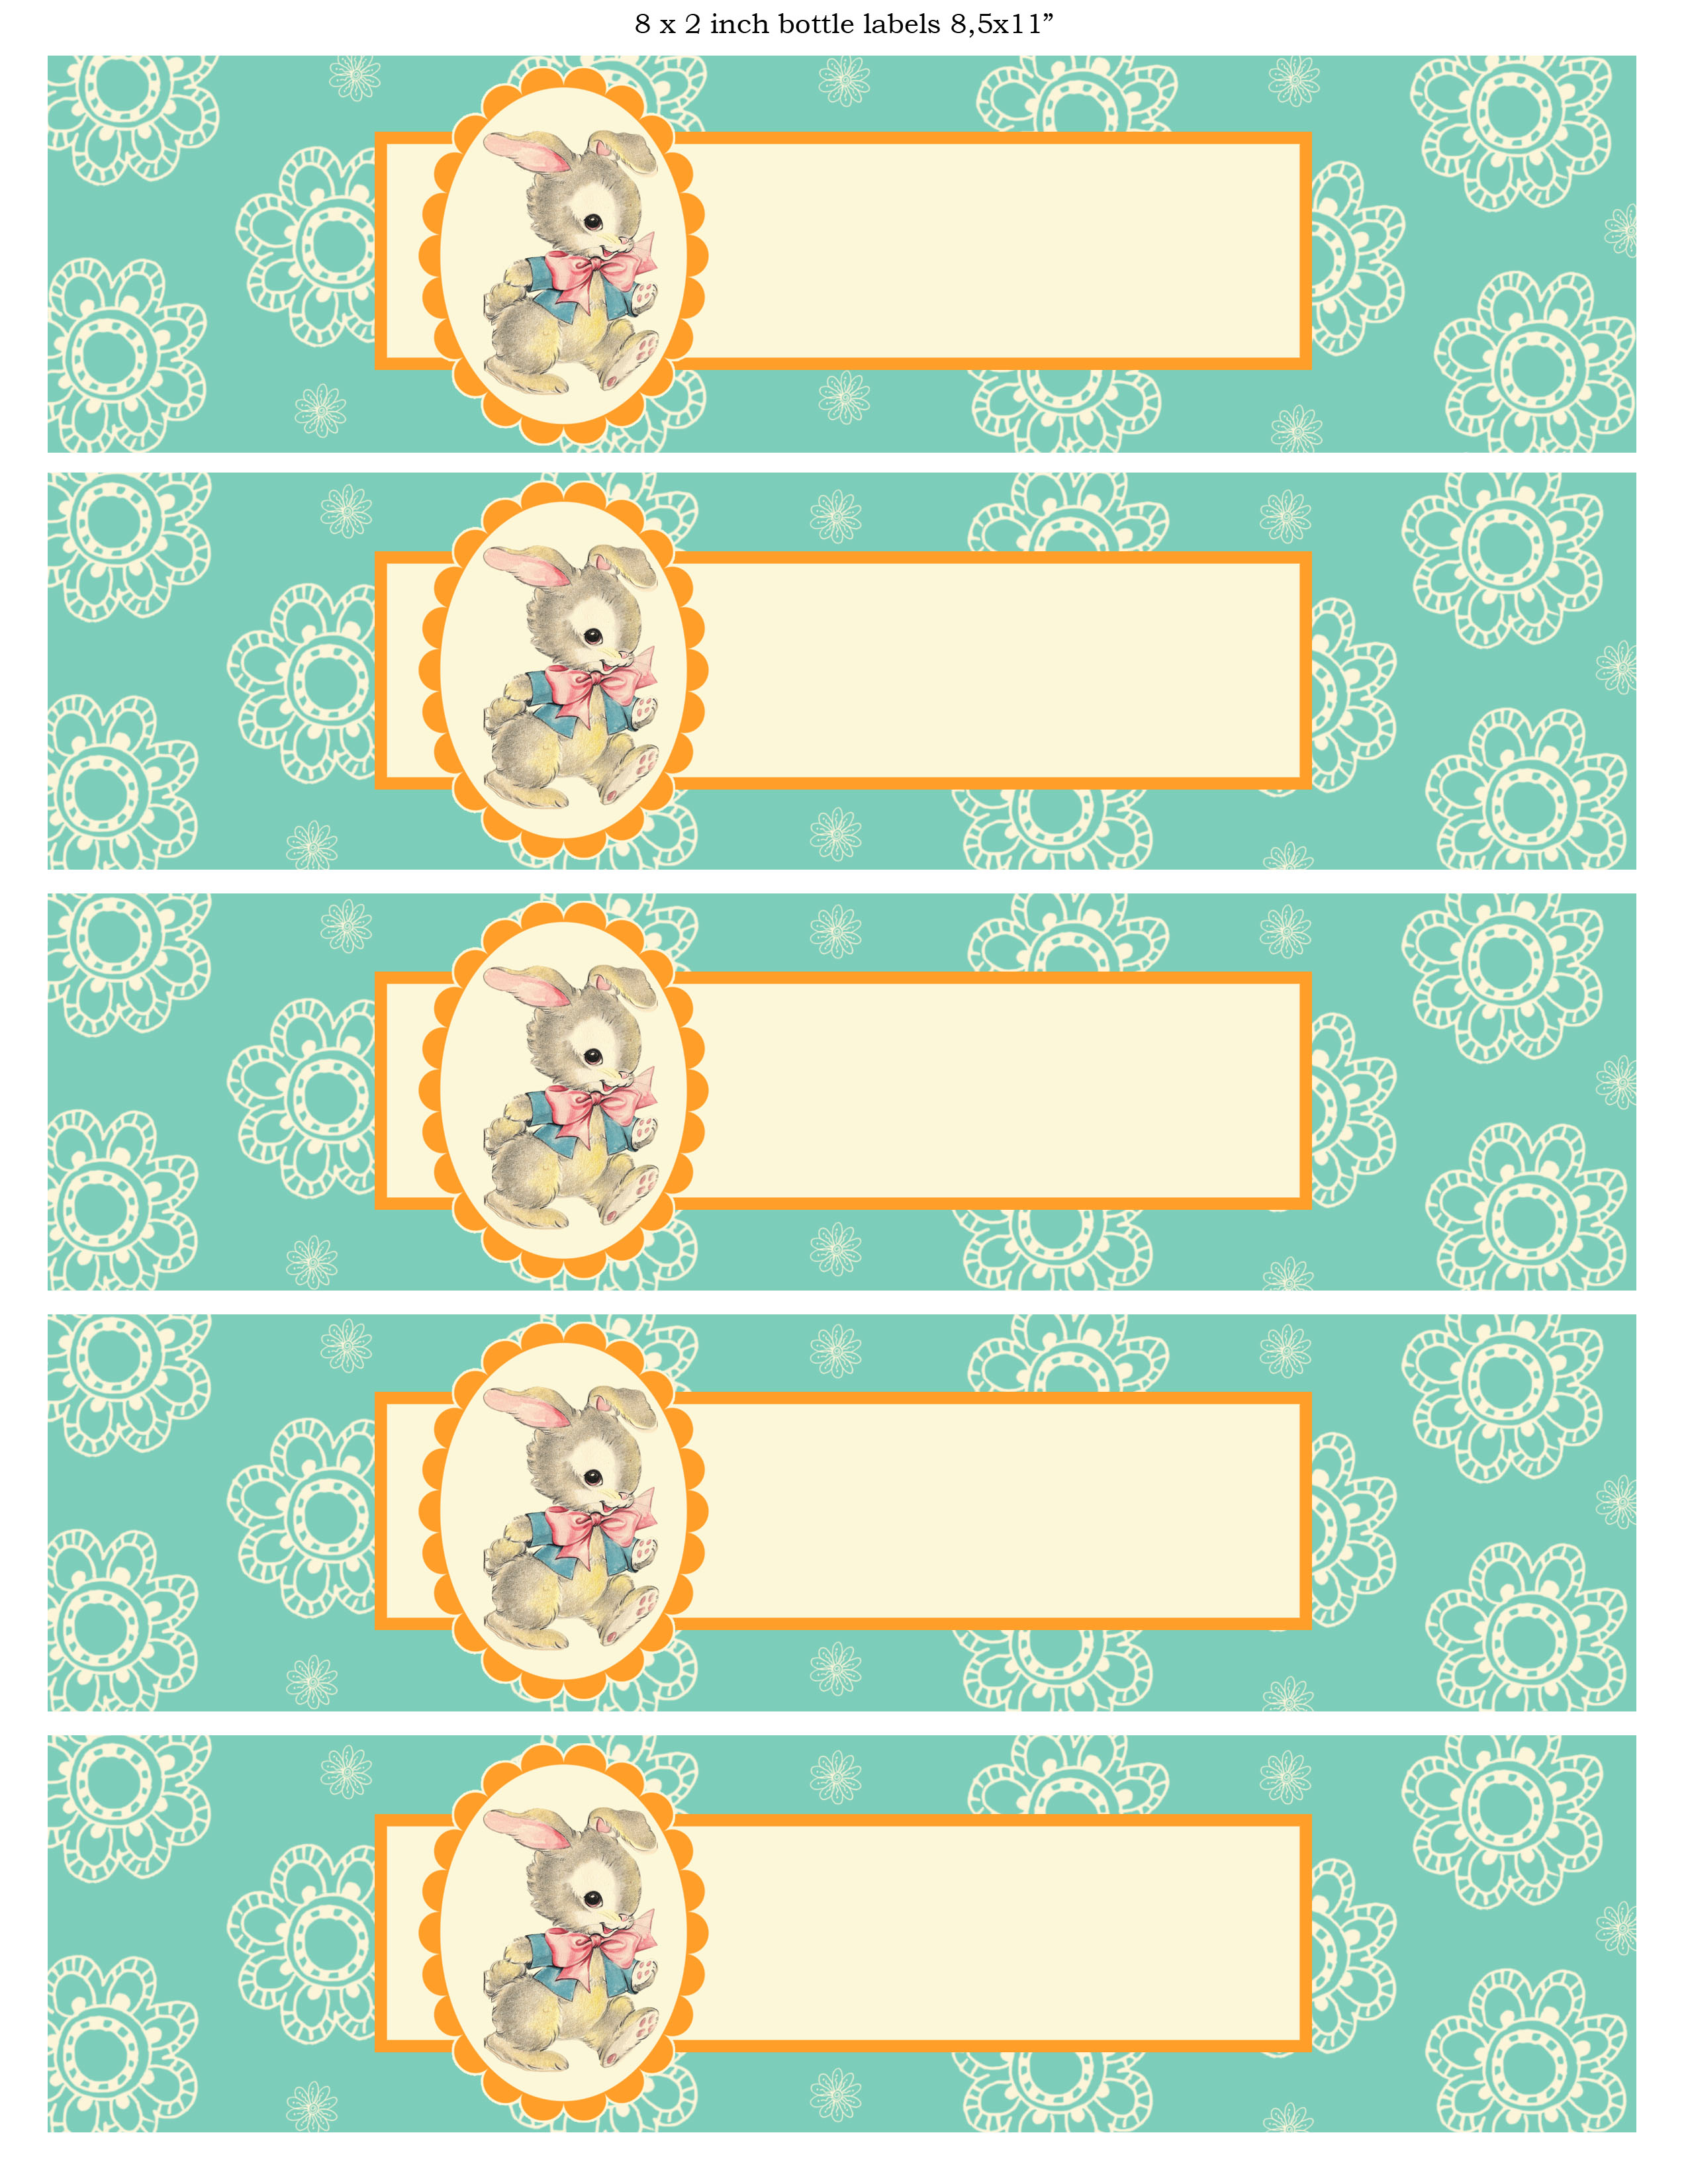 Free Printable Baby Shower Templates - Free Printable Baby Shower Labels For Bottled Water